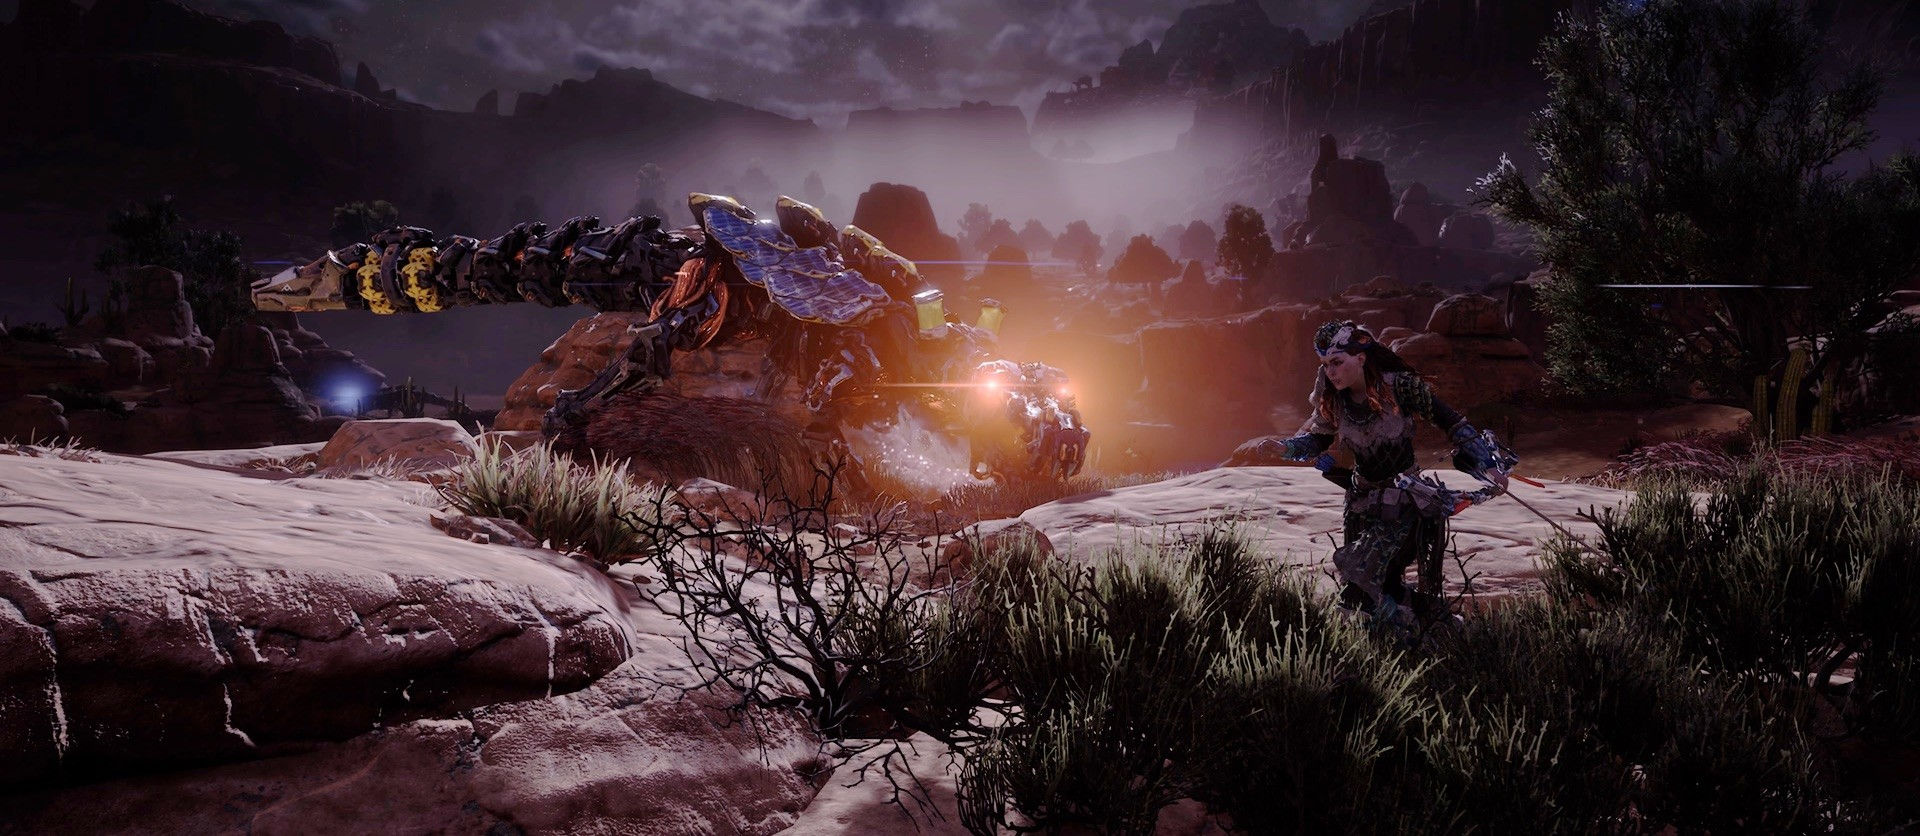 Wunscheröne Open-World in Horizon Zero Dawn